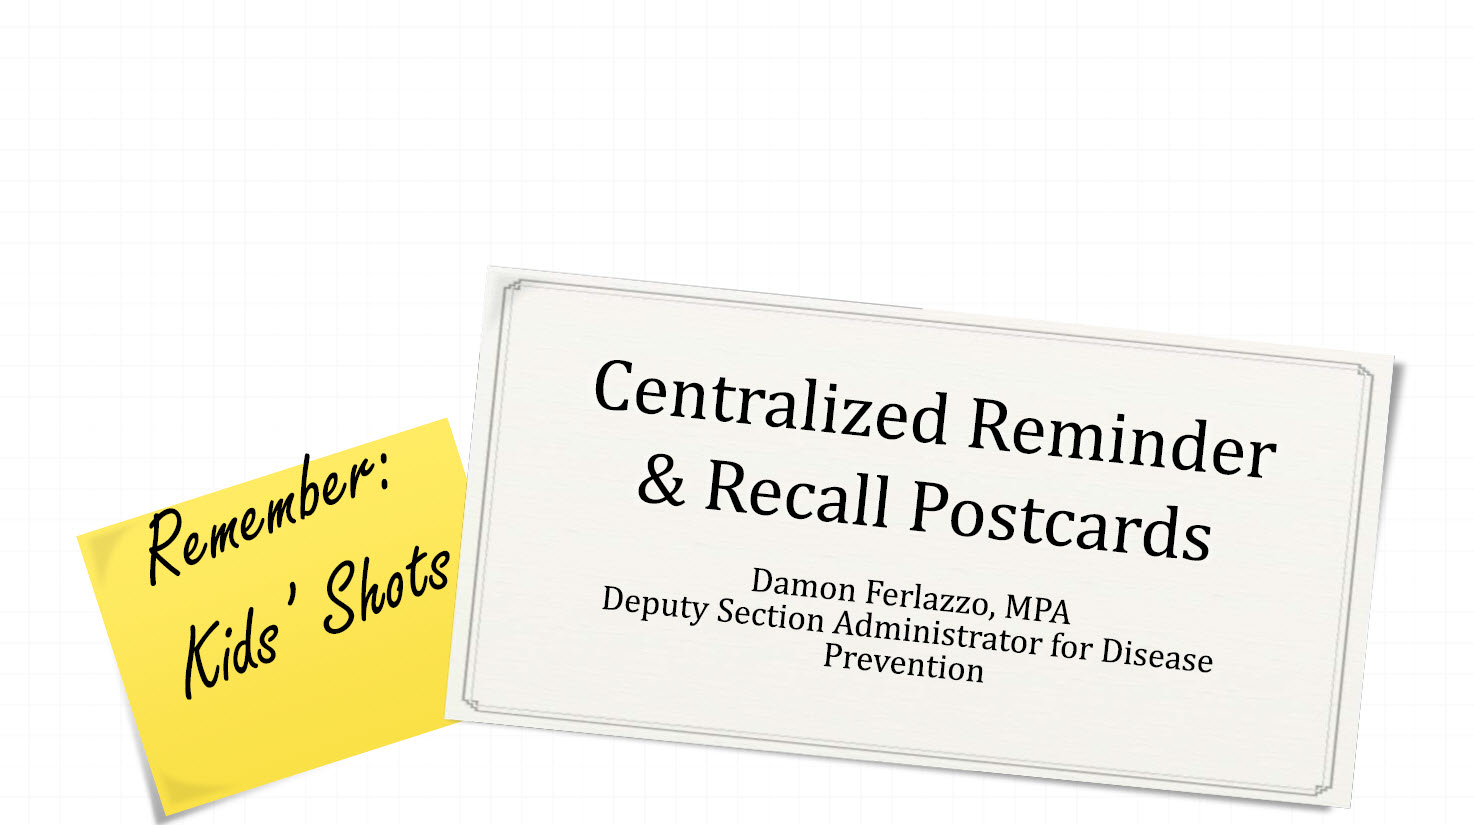 Statewide Immunization Reminder & Recall Postcards